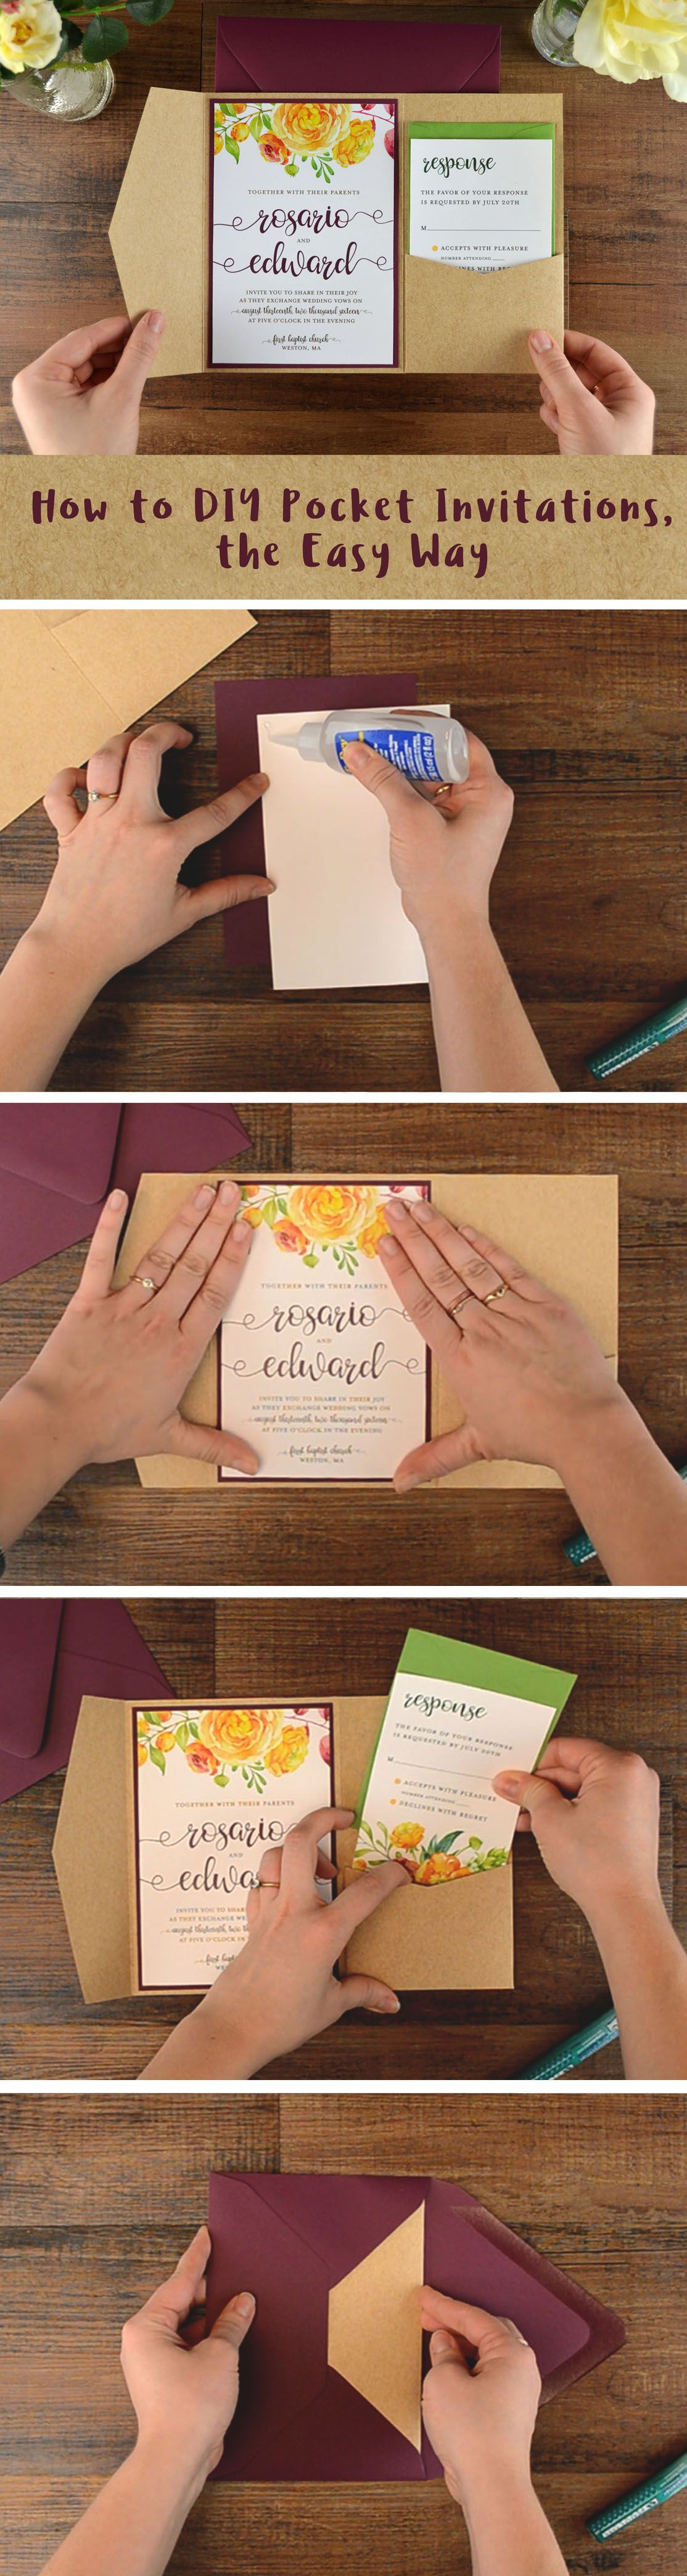 How to DIY Pocket Invitations, the Easy Way | Free invitation ...